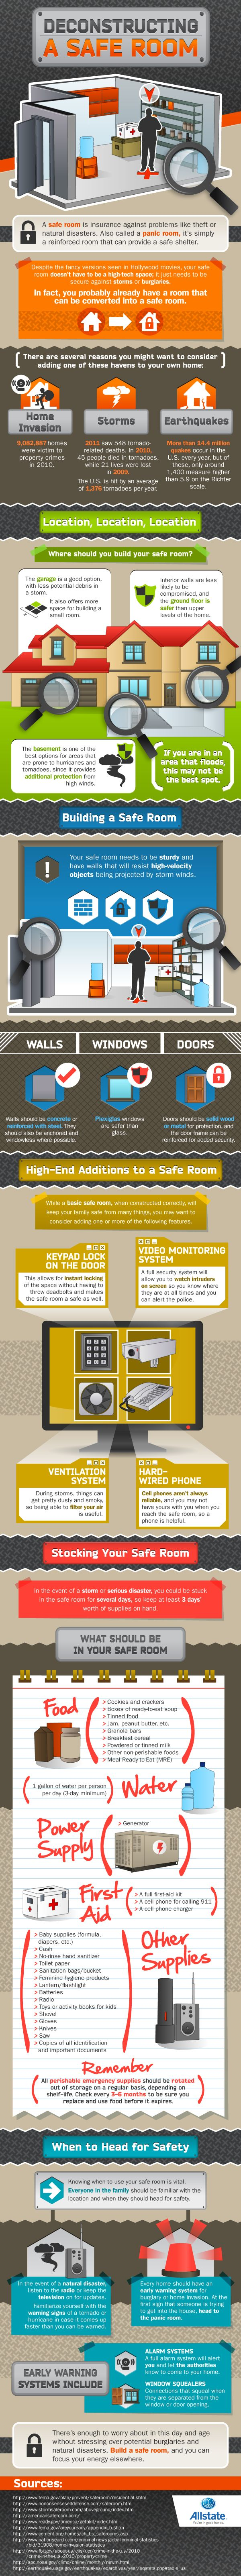 What is a safe room? And how can I build one in my home? (infographic)